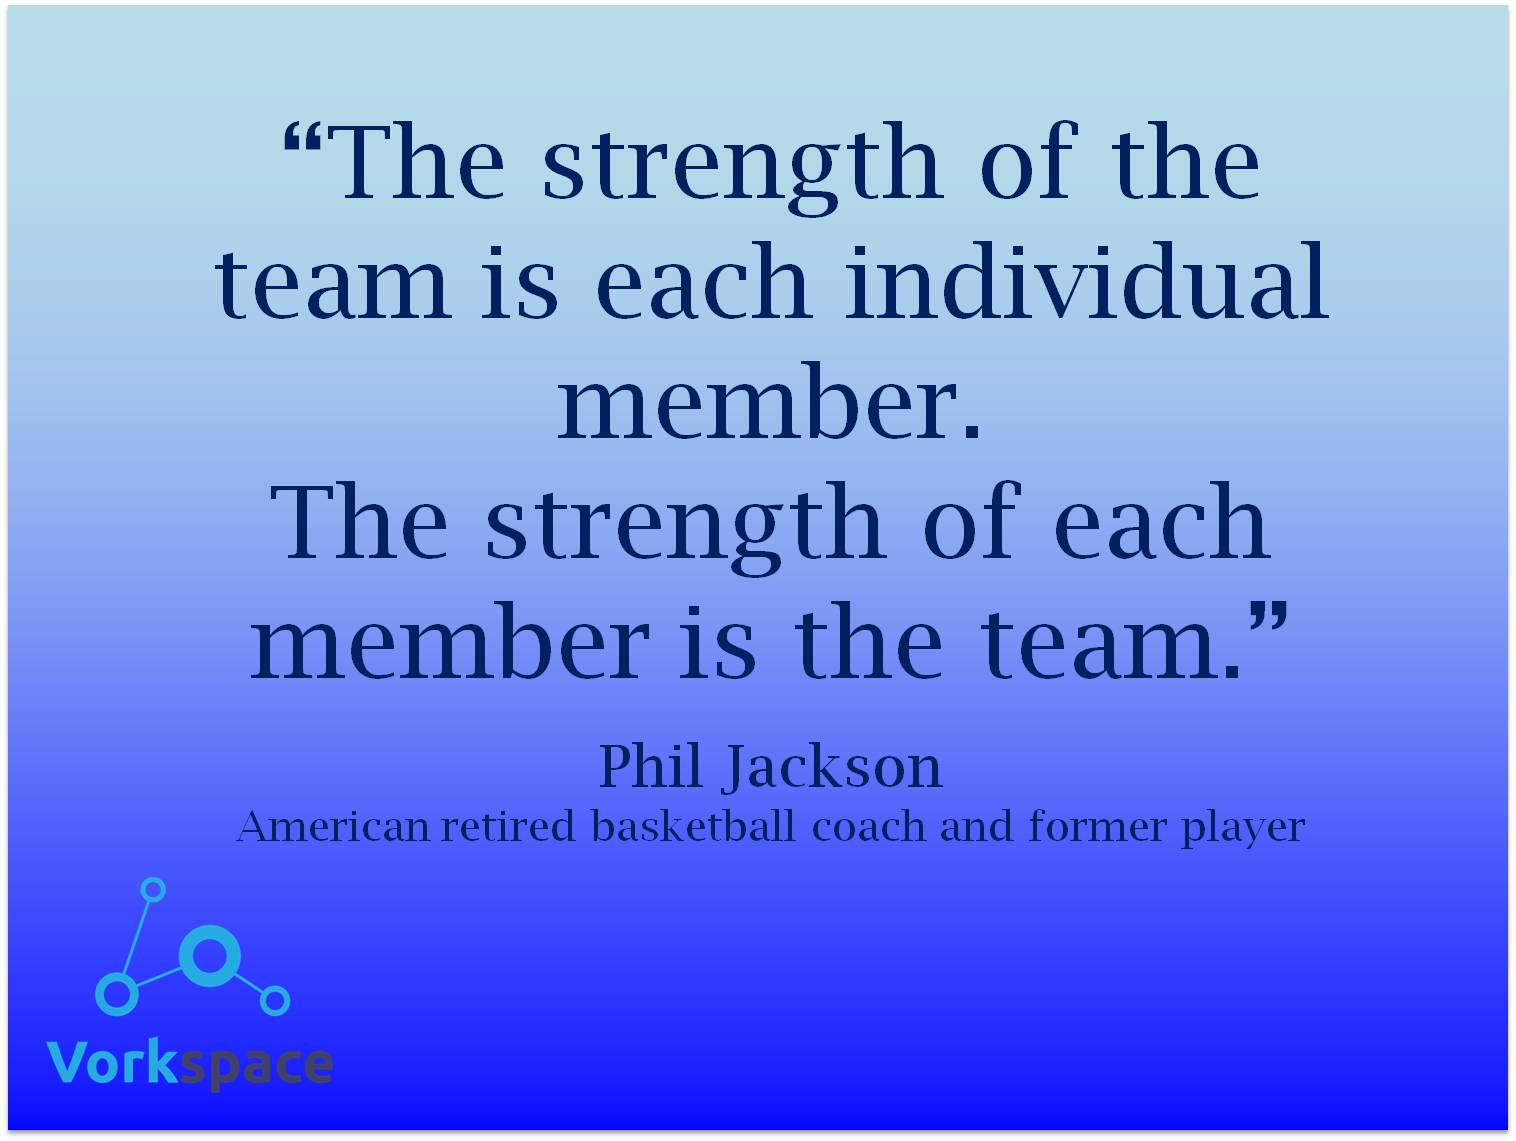 Teamwork Quotes 57 Best Teamwork Quotes & Sayings